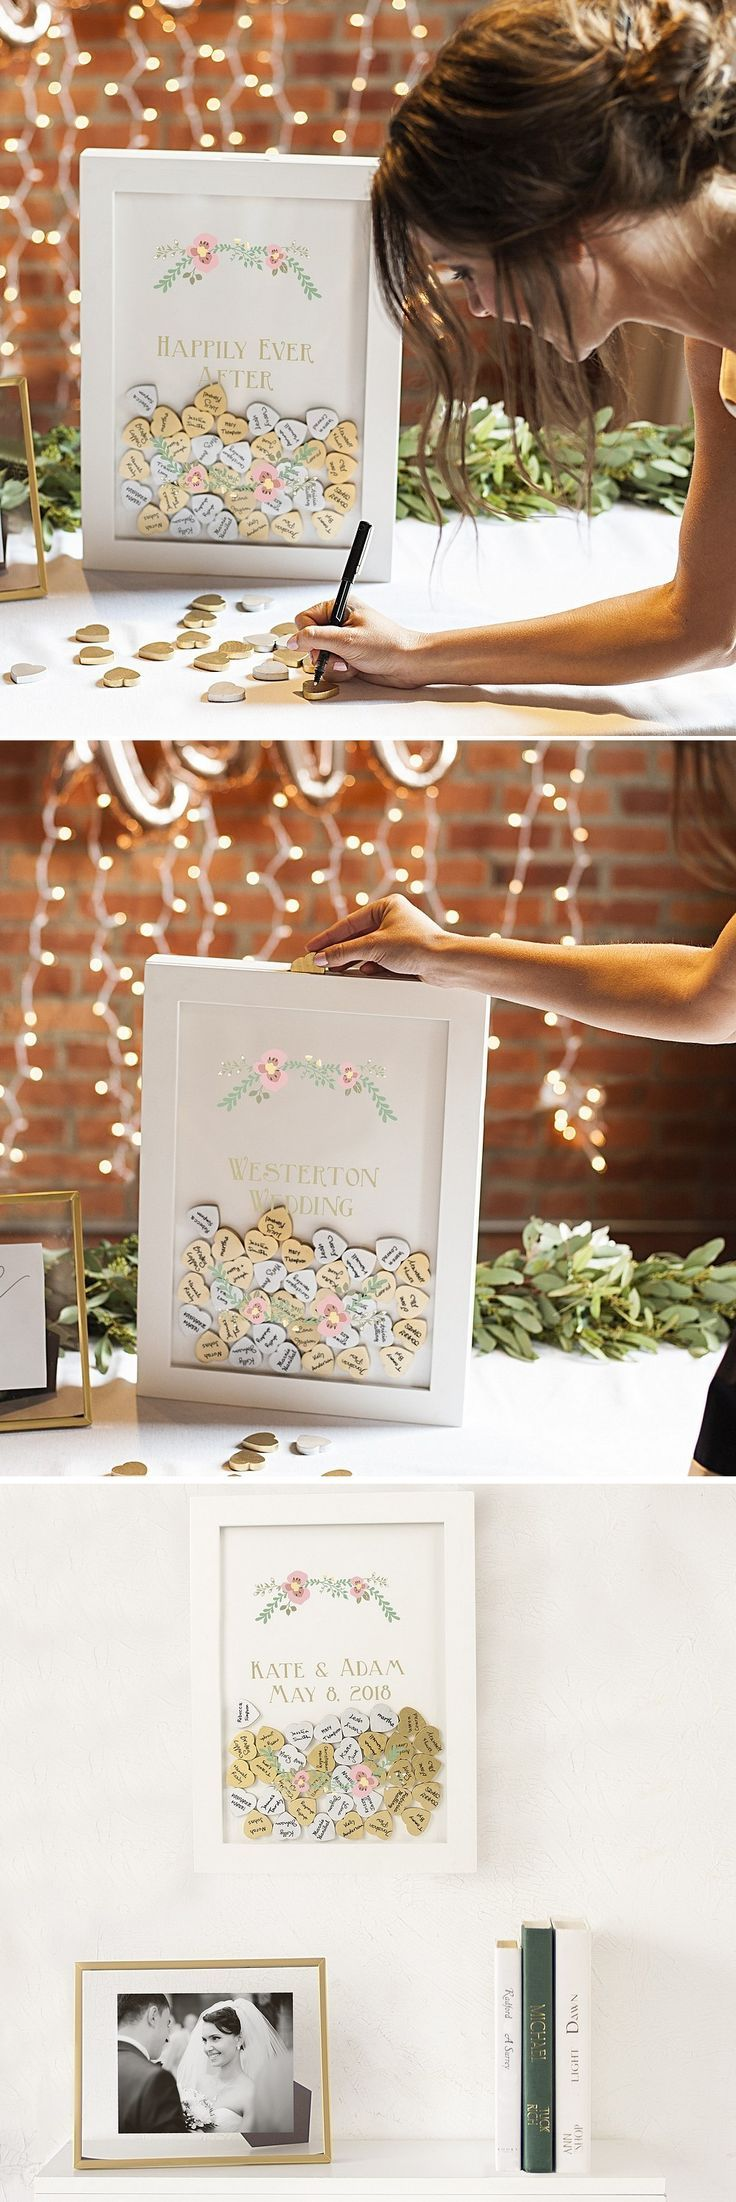 Give guests a fun way to be a part of your wedding day with this white guest signature shadow box personalized with choice of 2 custom lines of print, monogram and date, or large single initial with gold and silver wooden signature hearts to sign and drop